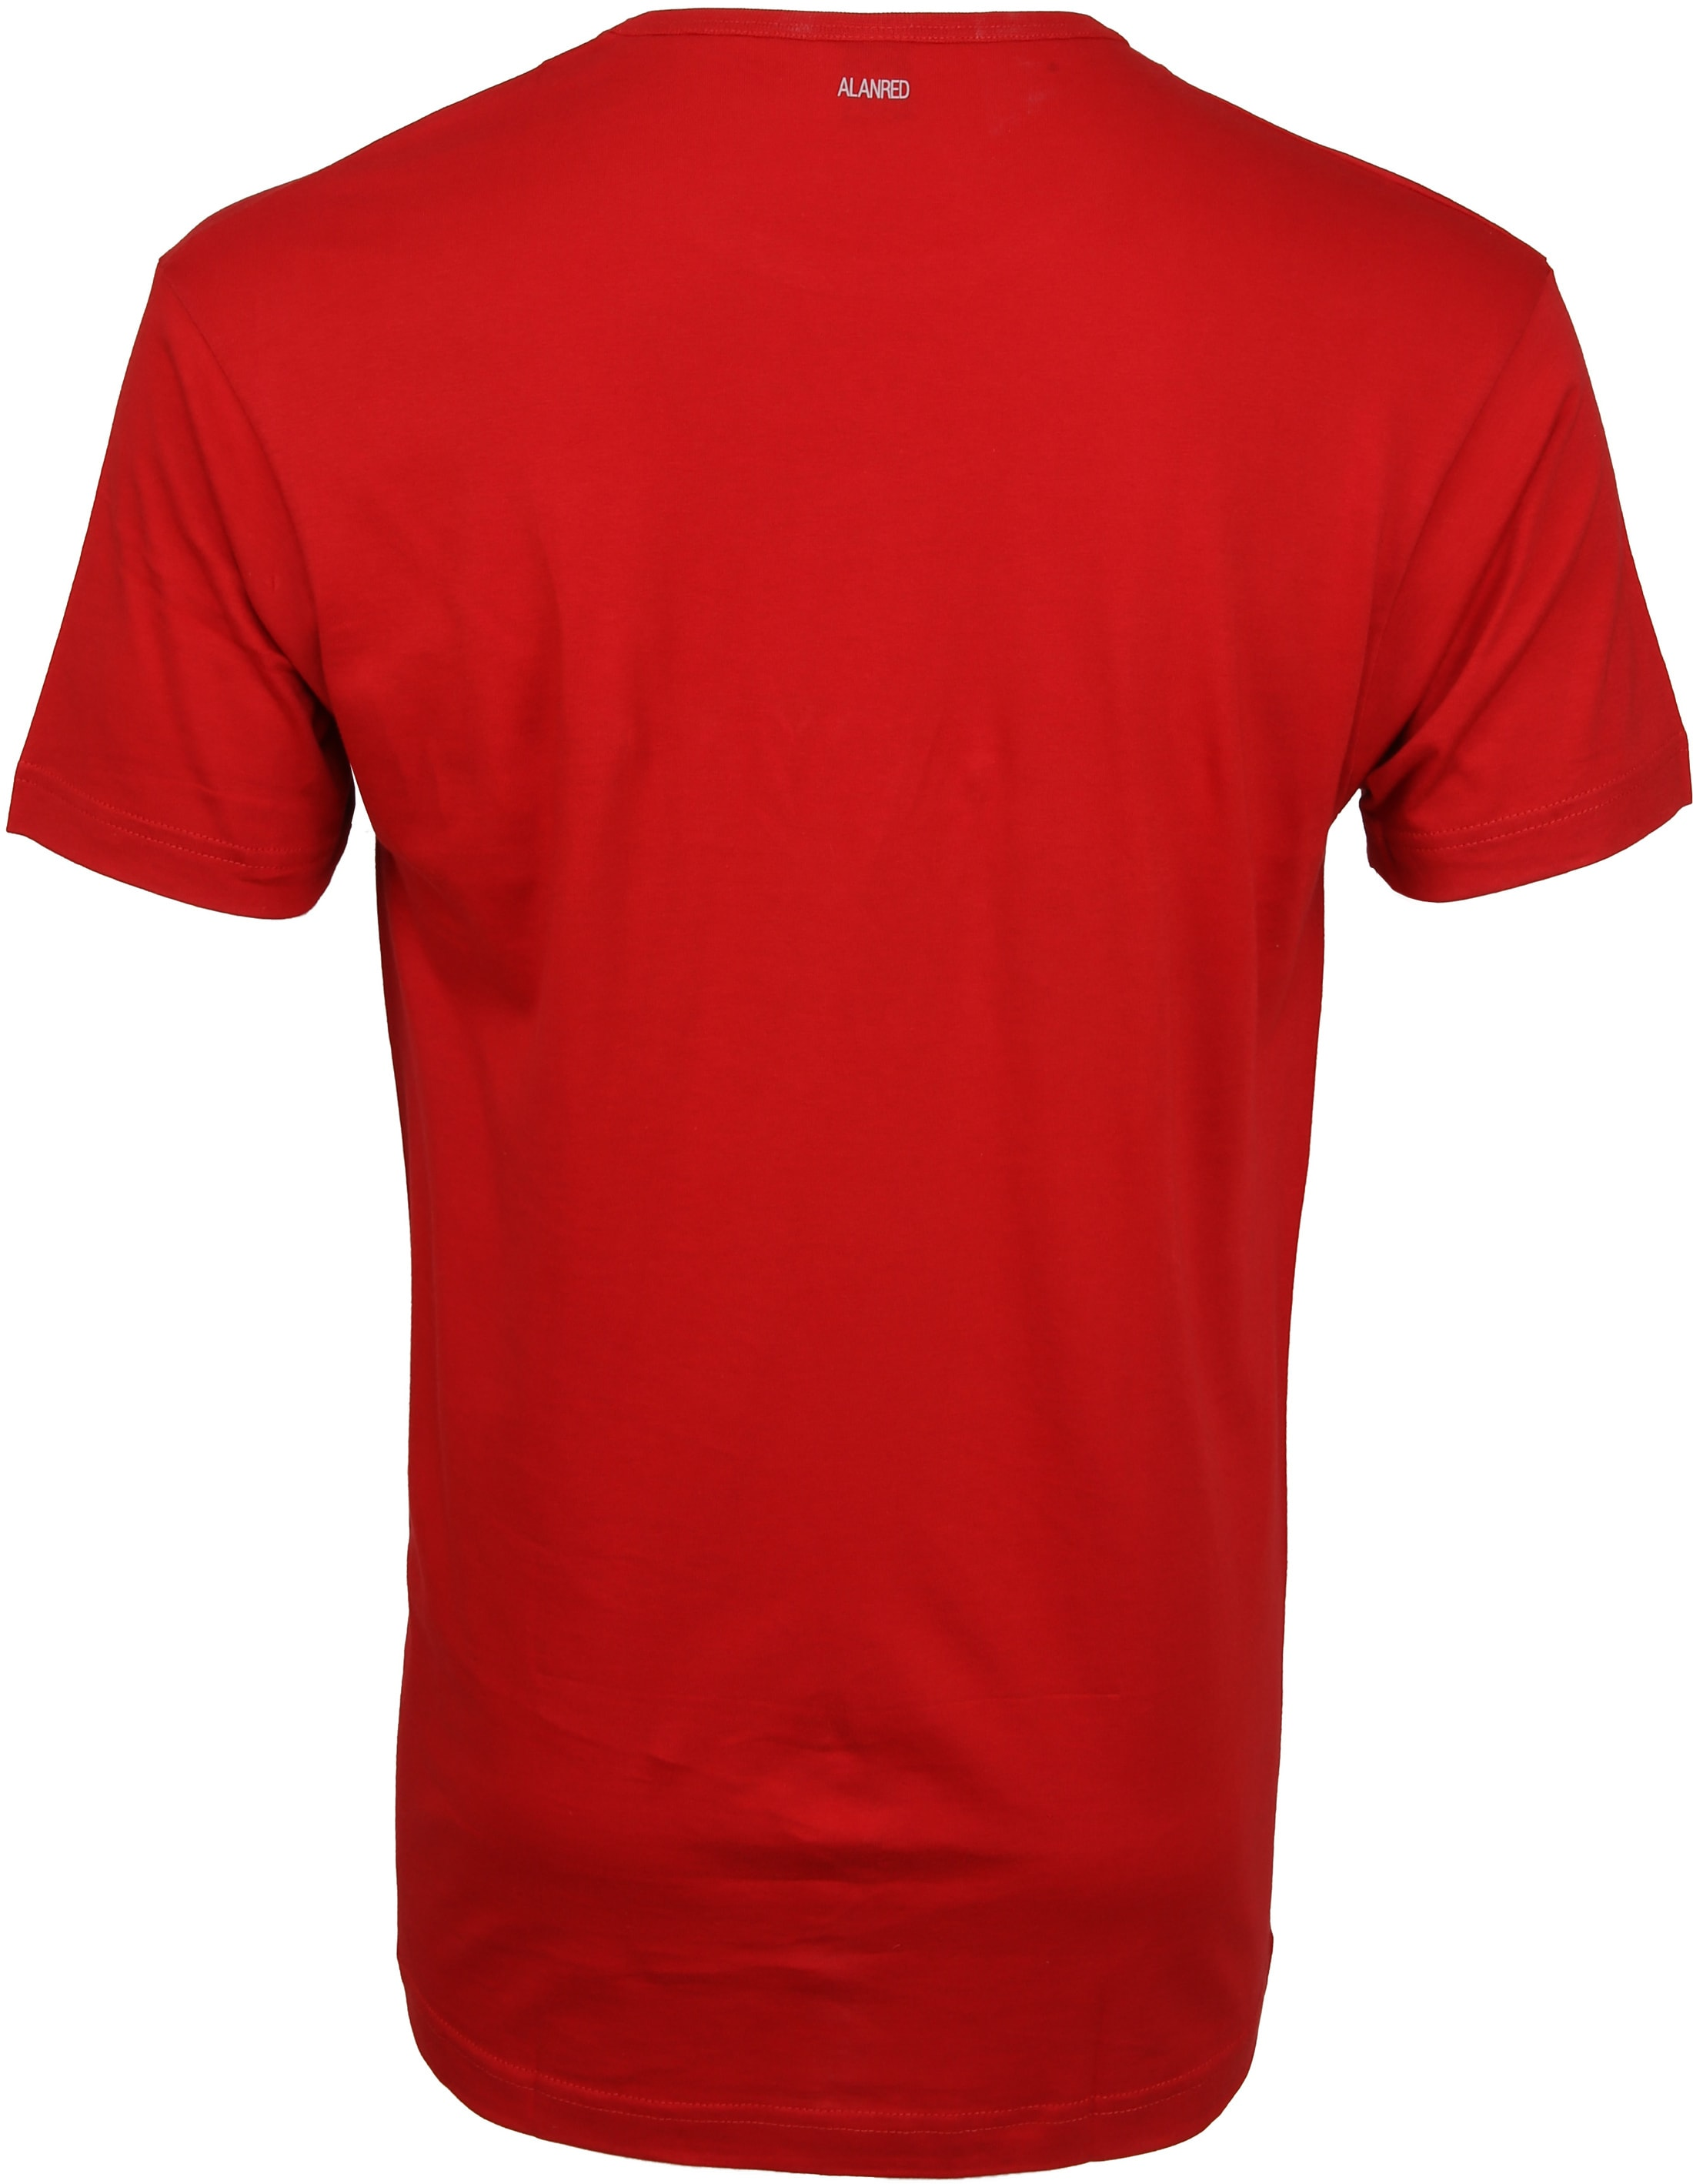 Alan Red Derby O-Hals T-Shirt Stone Red (2Pack) foto 3